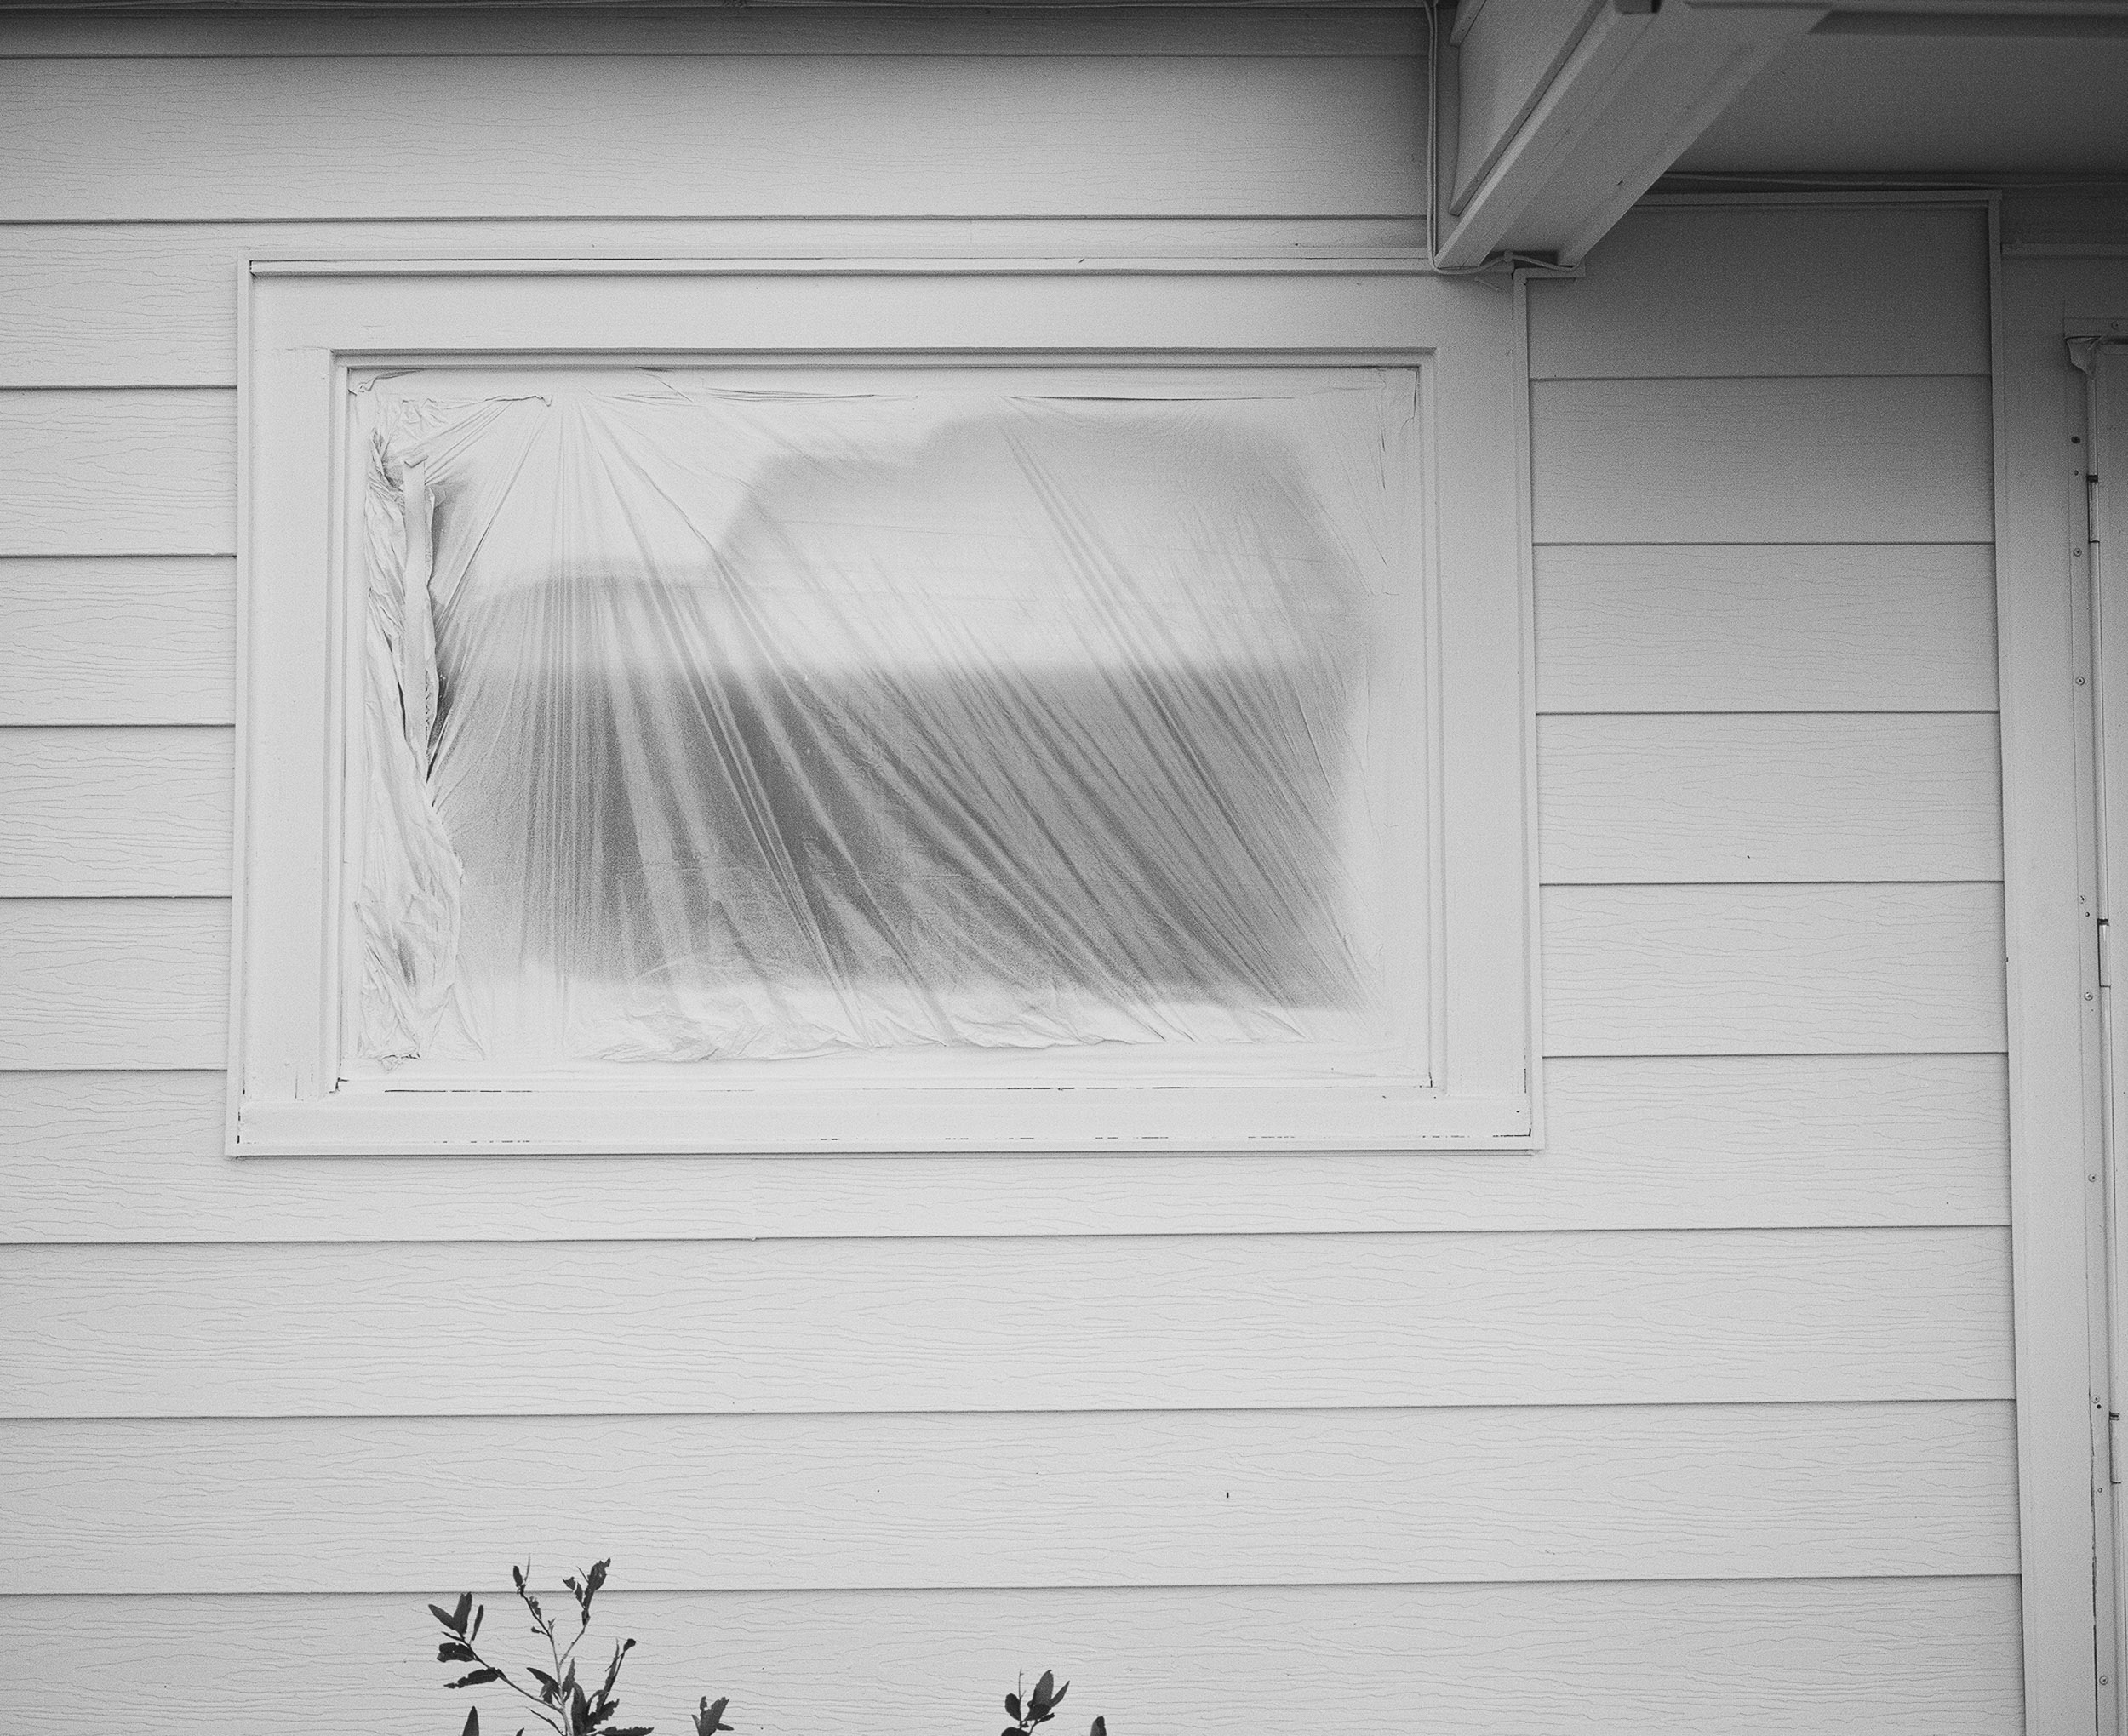 White window covered in plastic on the side of a house